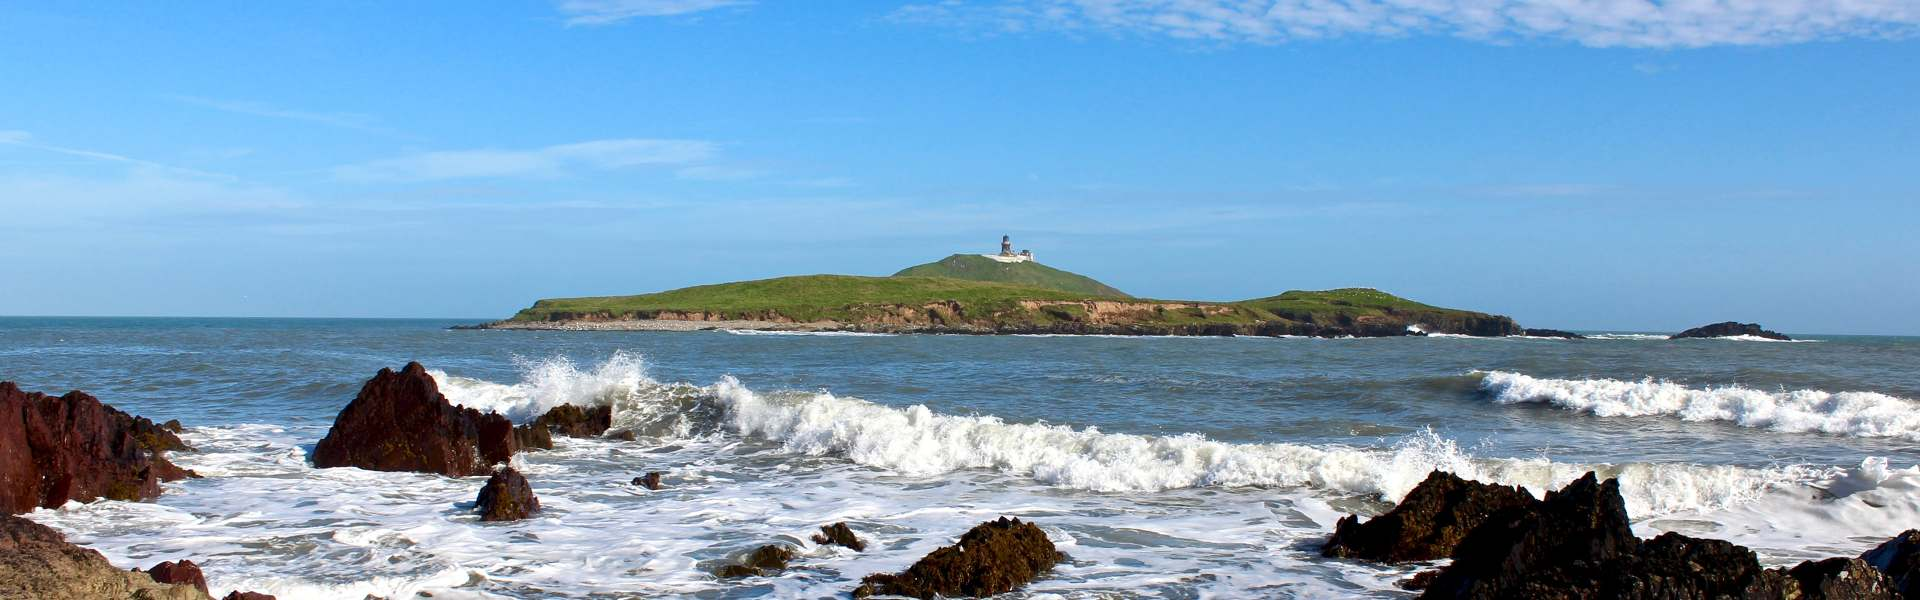 Ballycotton County Cork